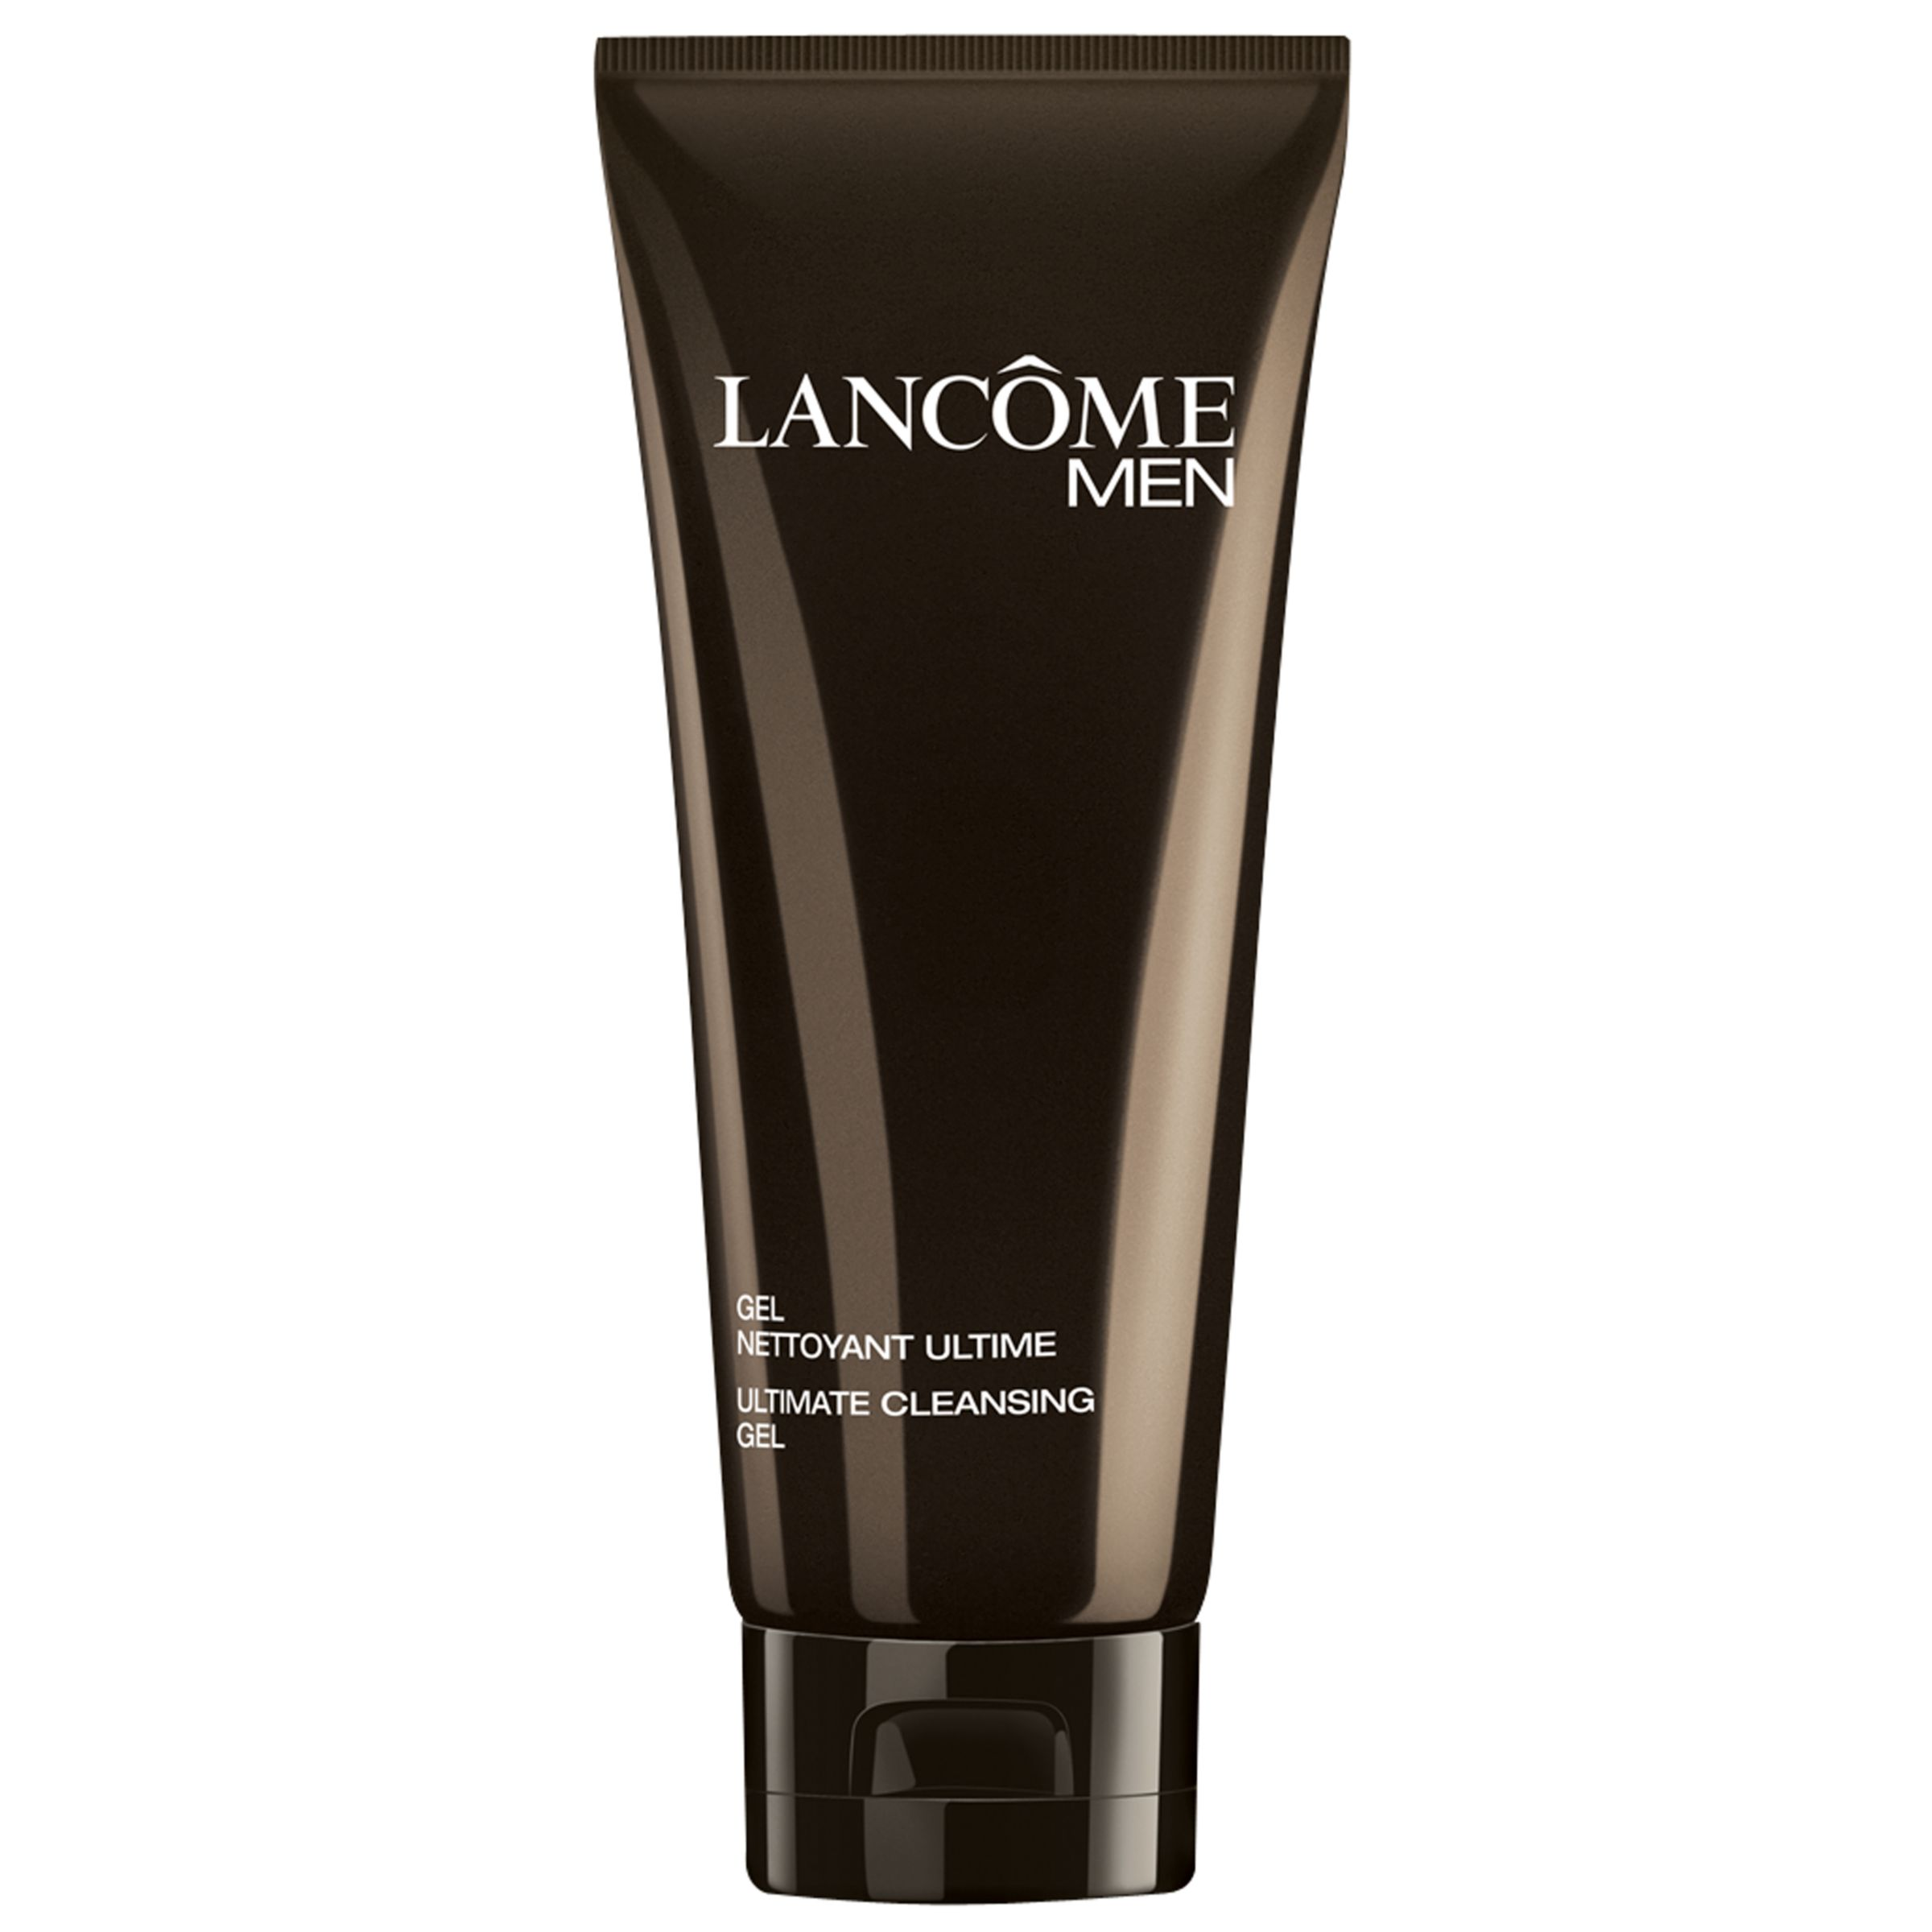 Lancome Lancôme Men Ultimate Cleansing Gel, 100ml